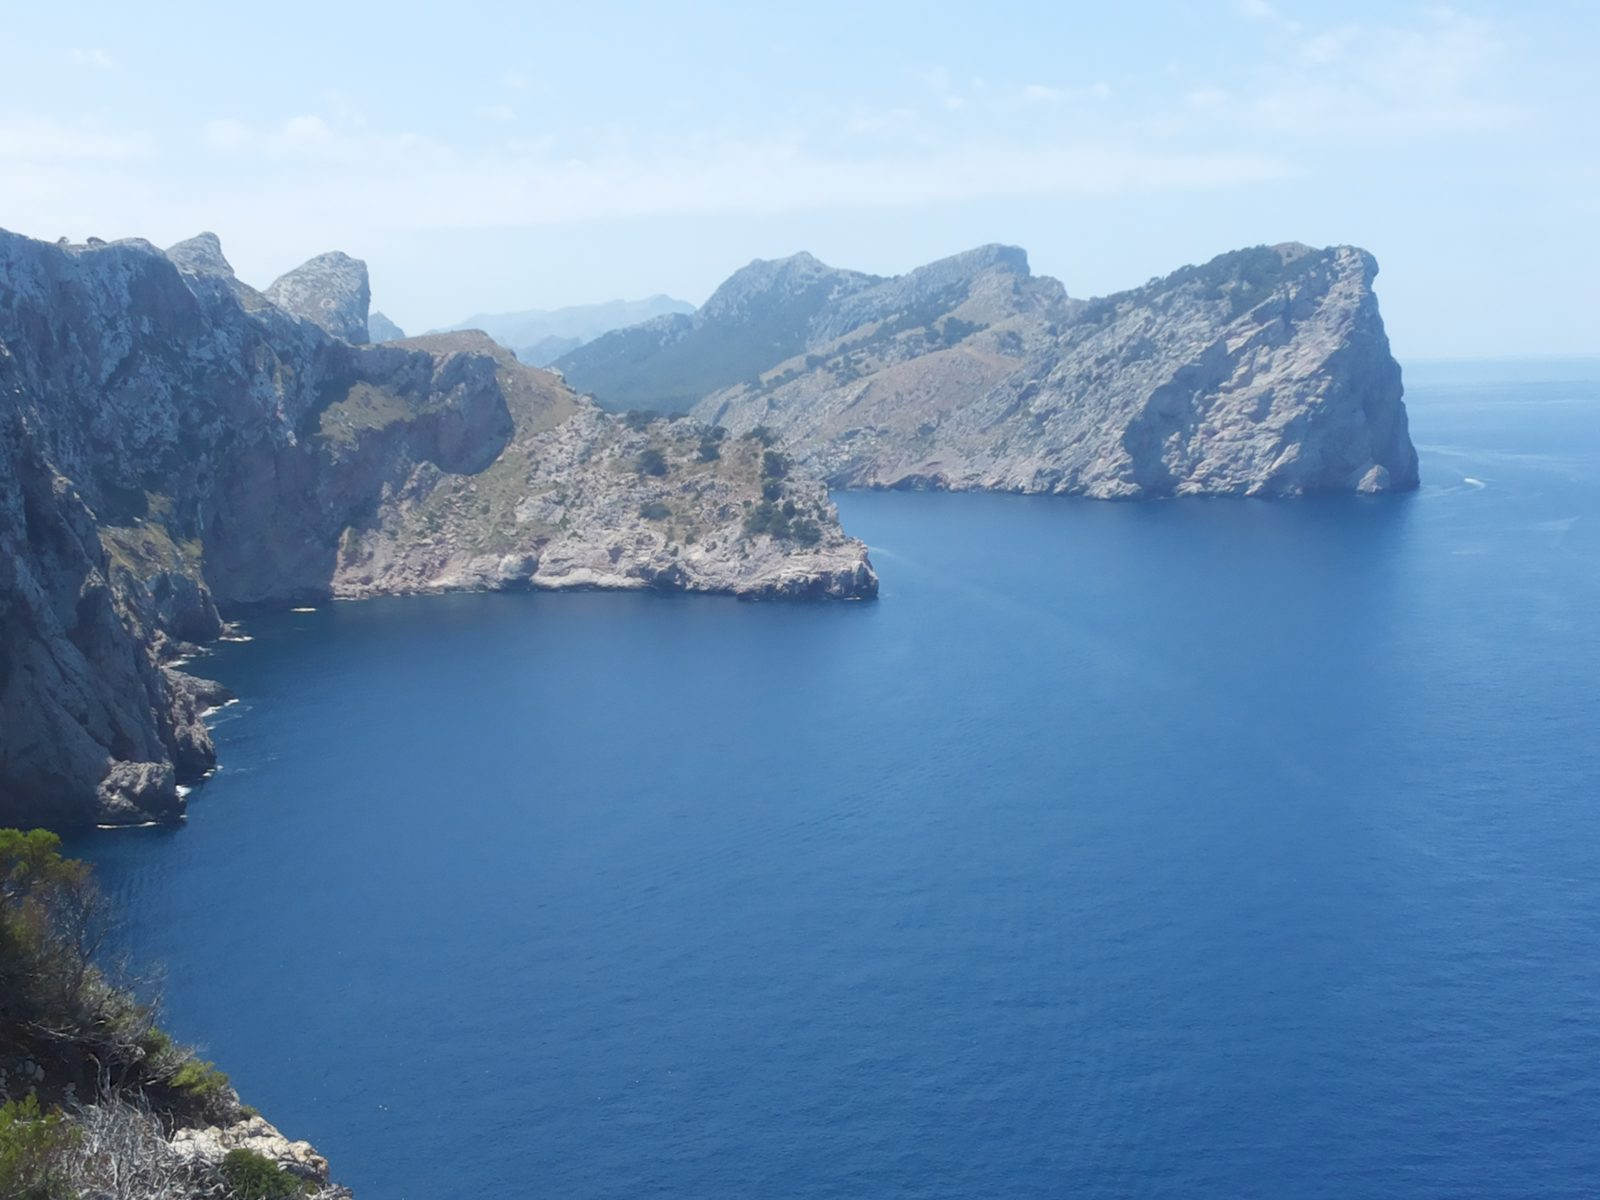 Mallorca's rugged coastline - Is Mallorca worth visiting?